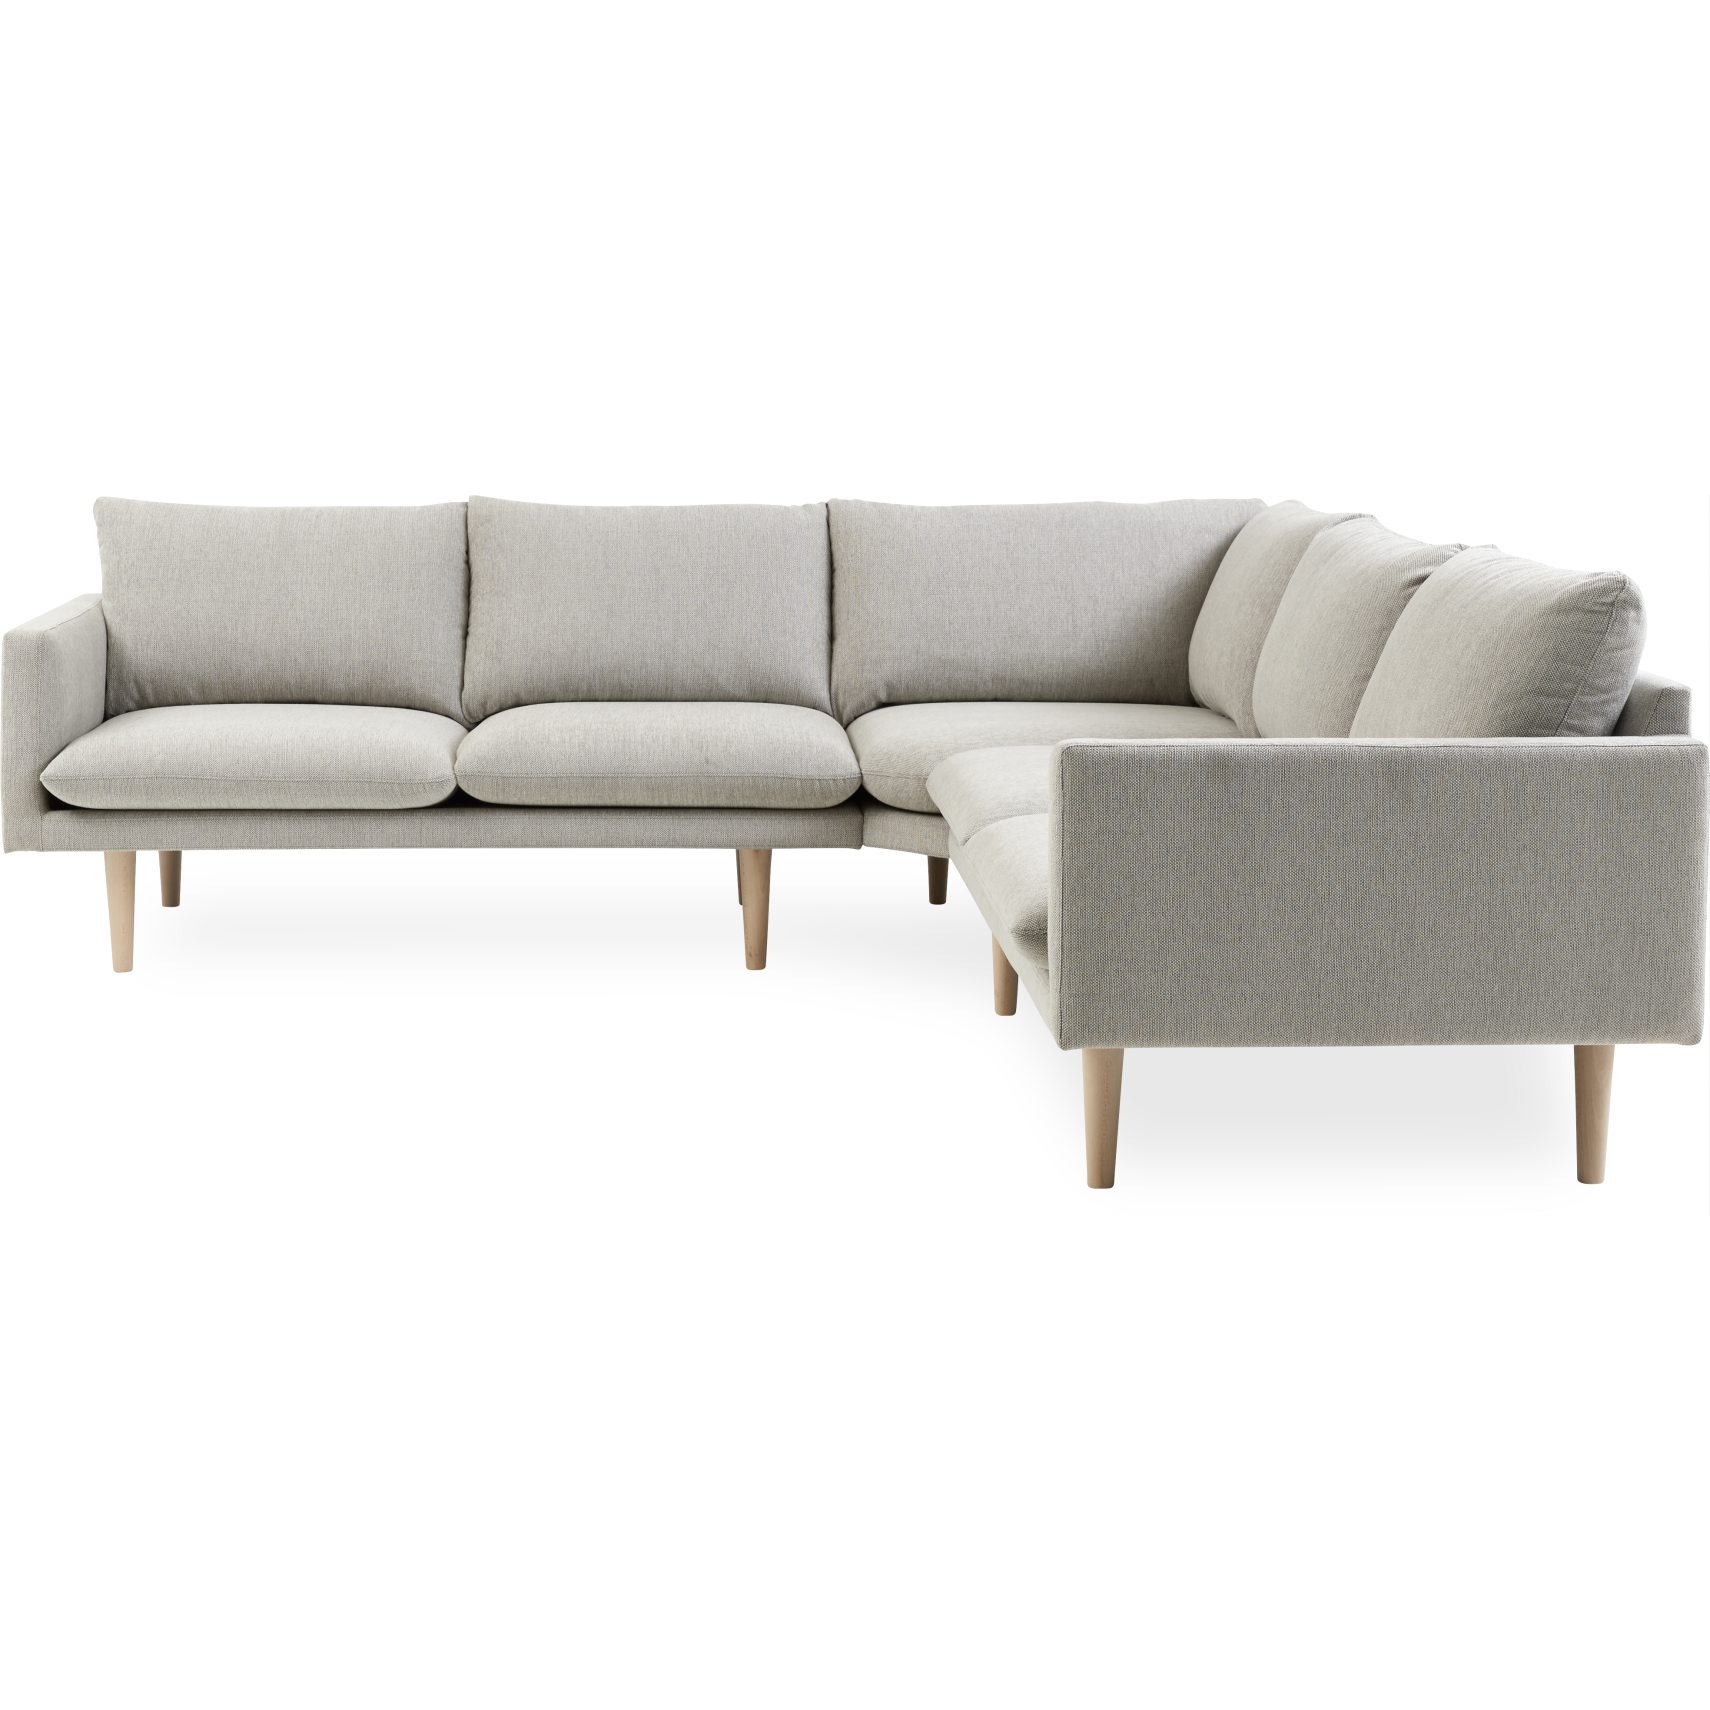 California Hjørnesofa - Chile 70 Light Grey stof og ben i ubehandlet bøg